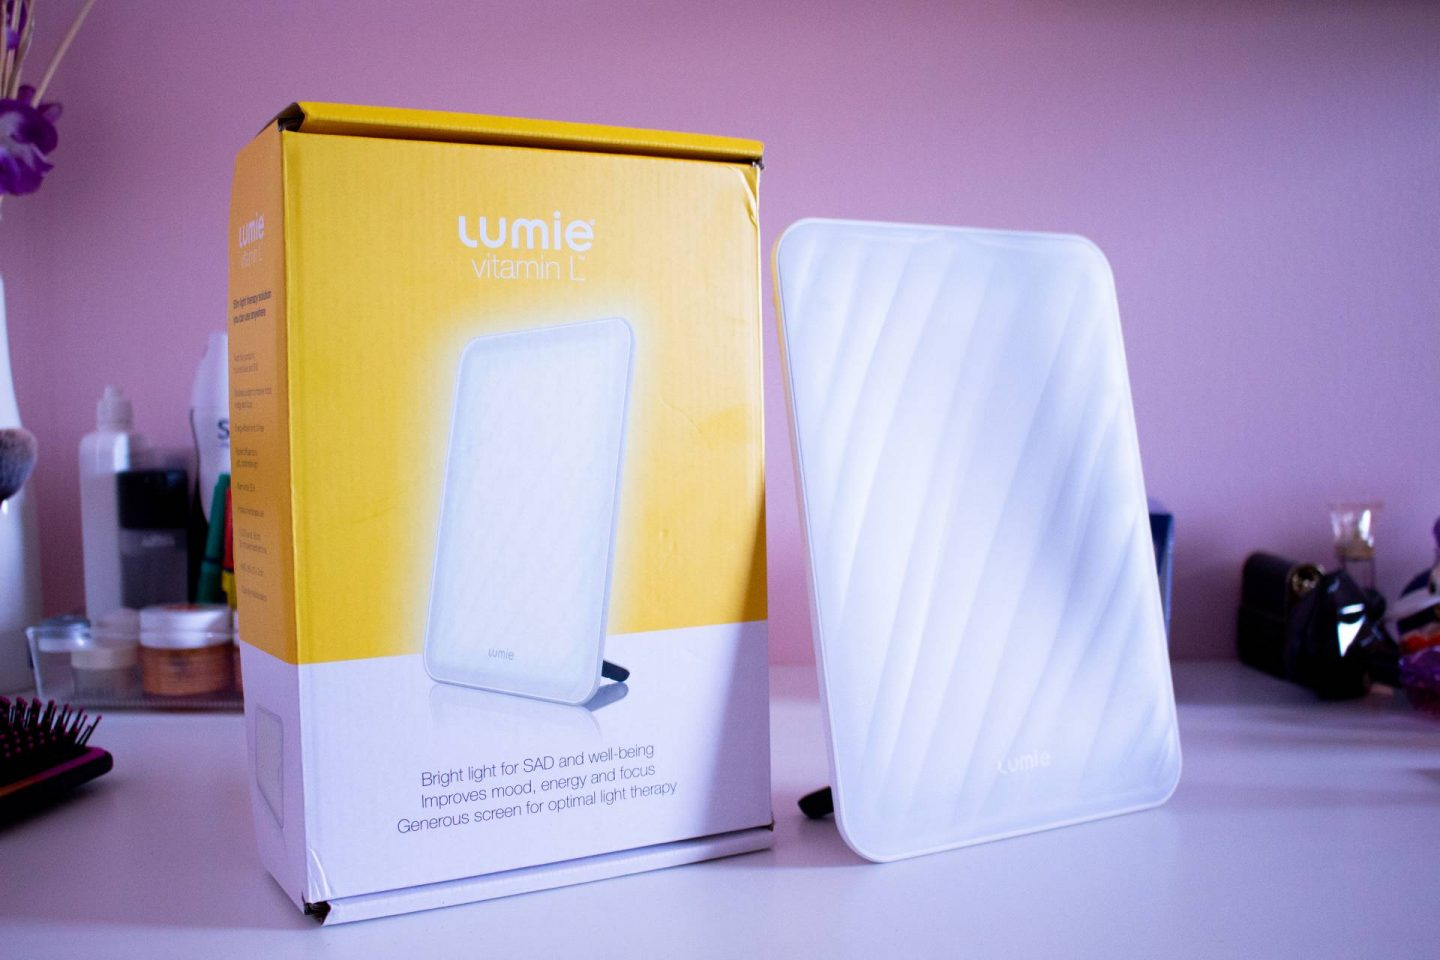 Lumie Vitamin L SAD lamp and box on dressing table